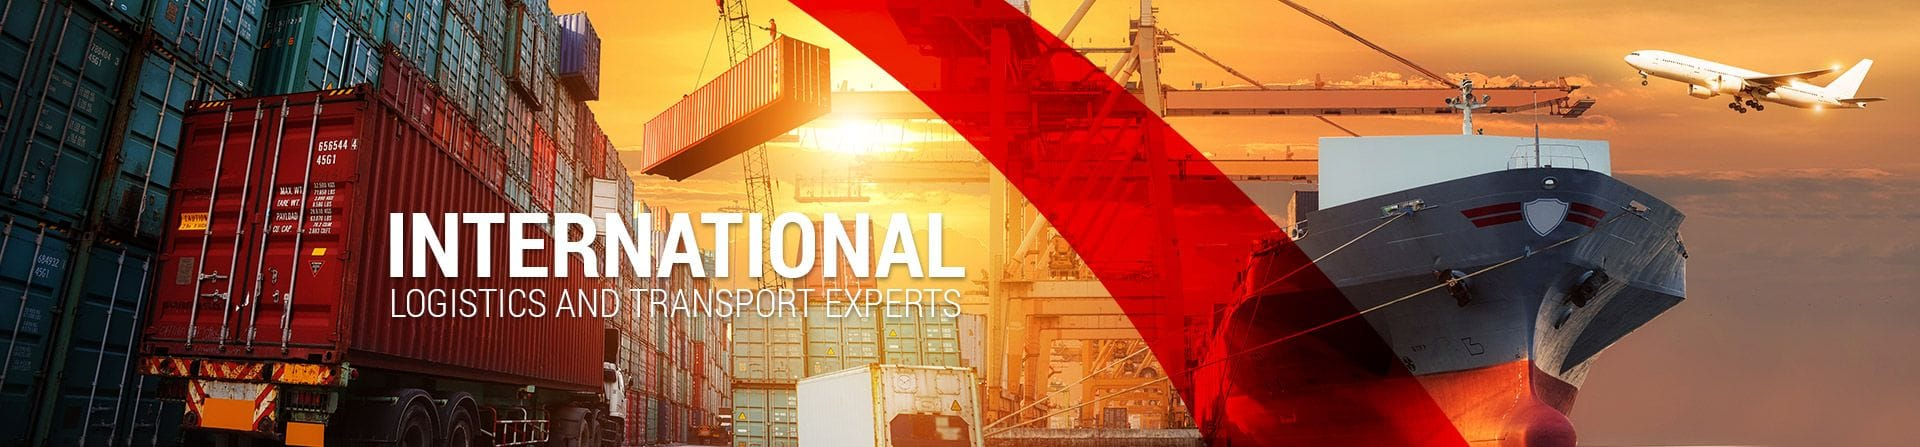 Scorpion International International Logistics and Transport Experts